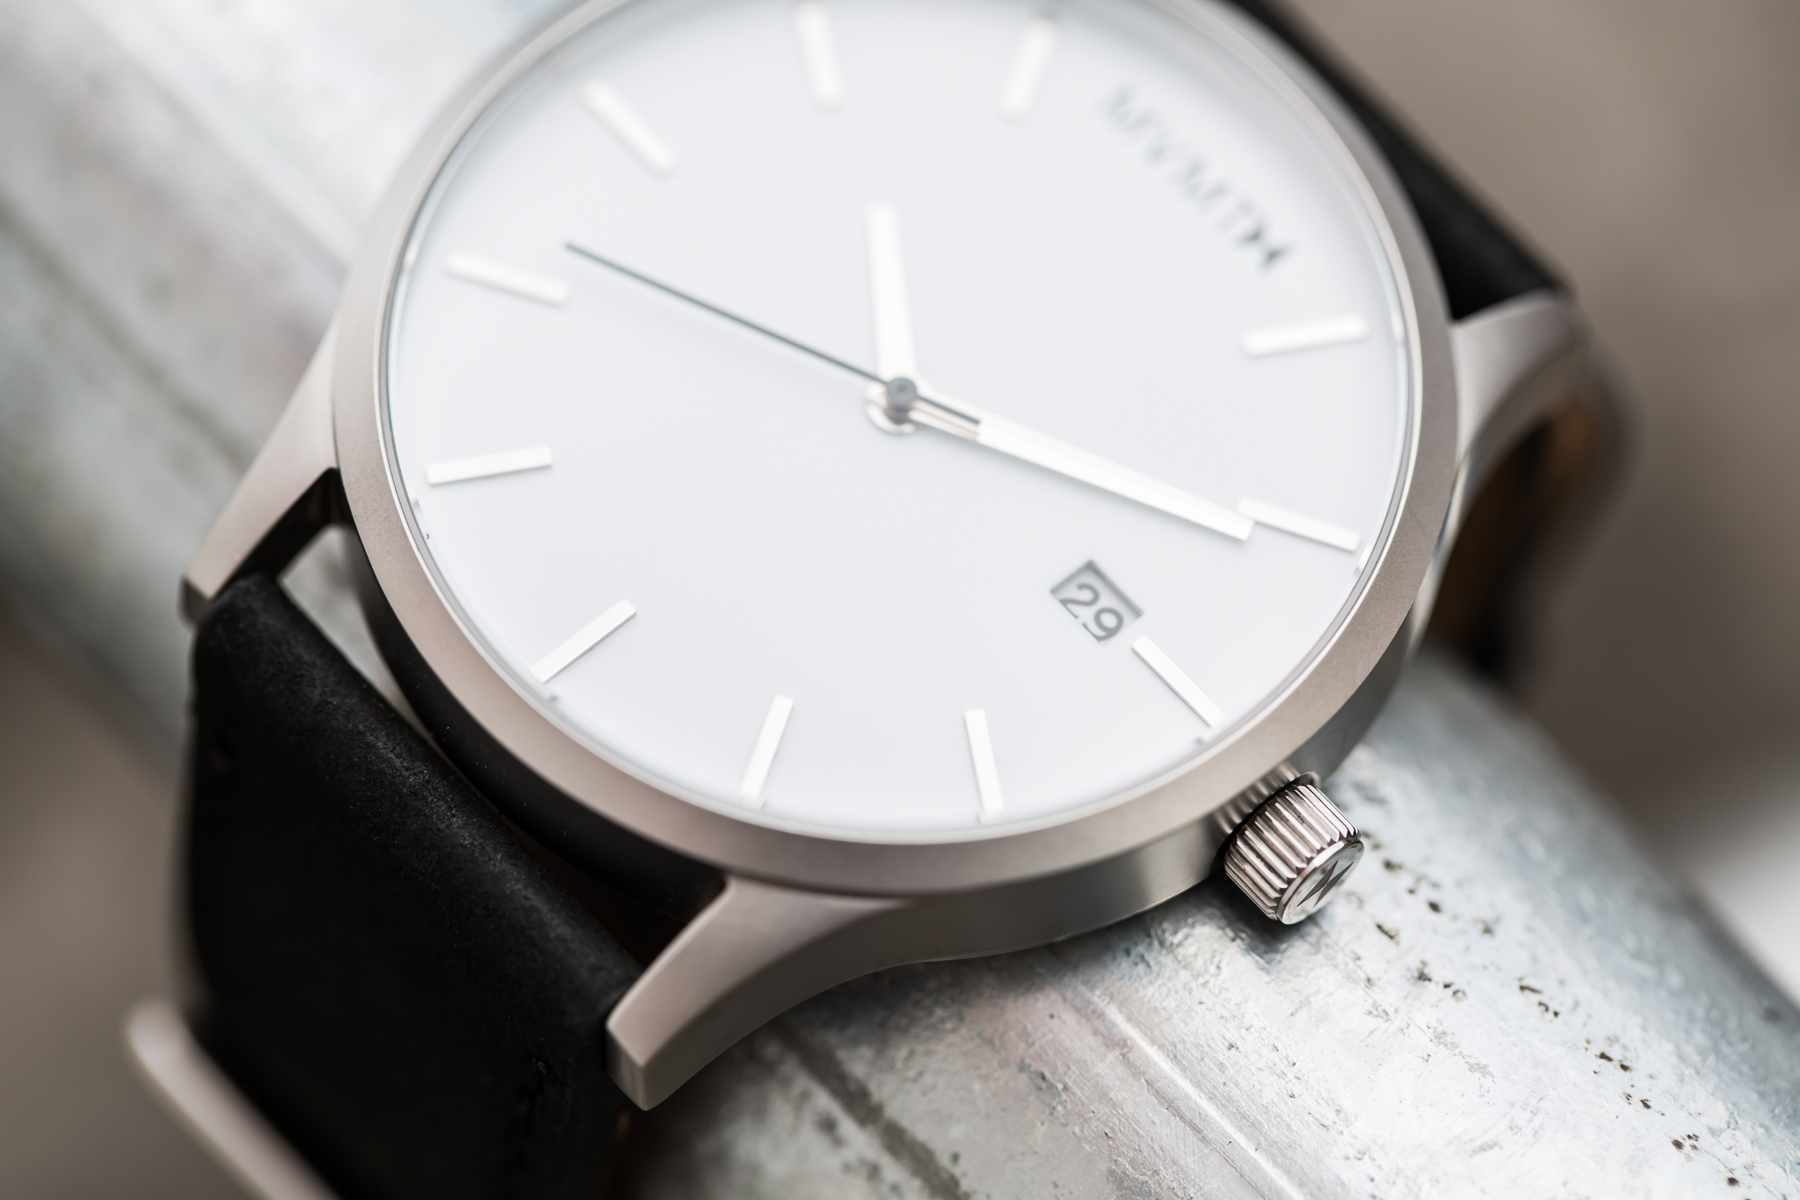 MVMT Watches 2014 Spring/Summer Collection